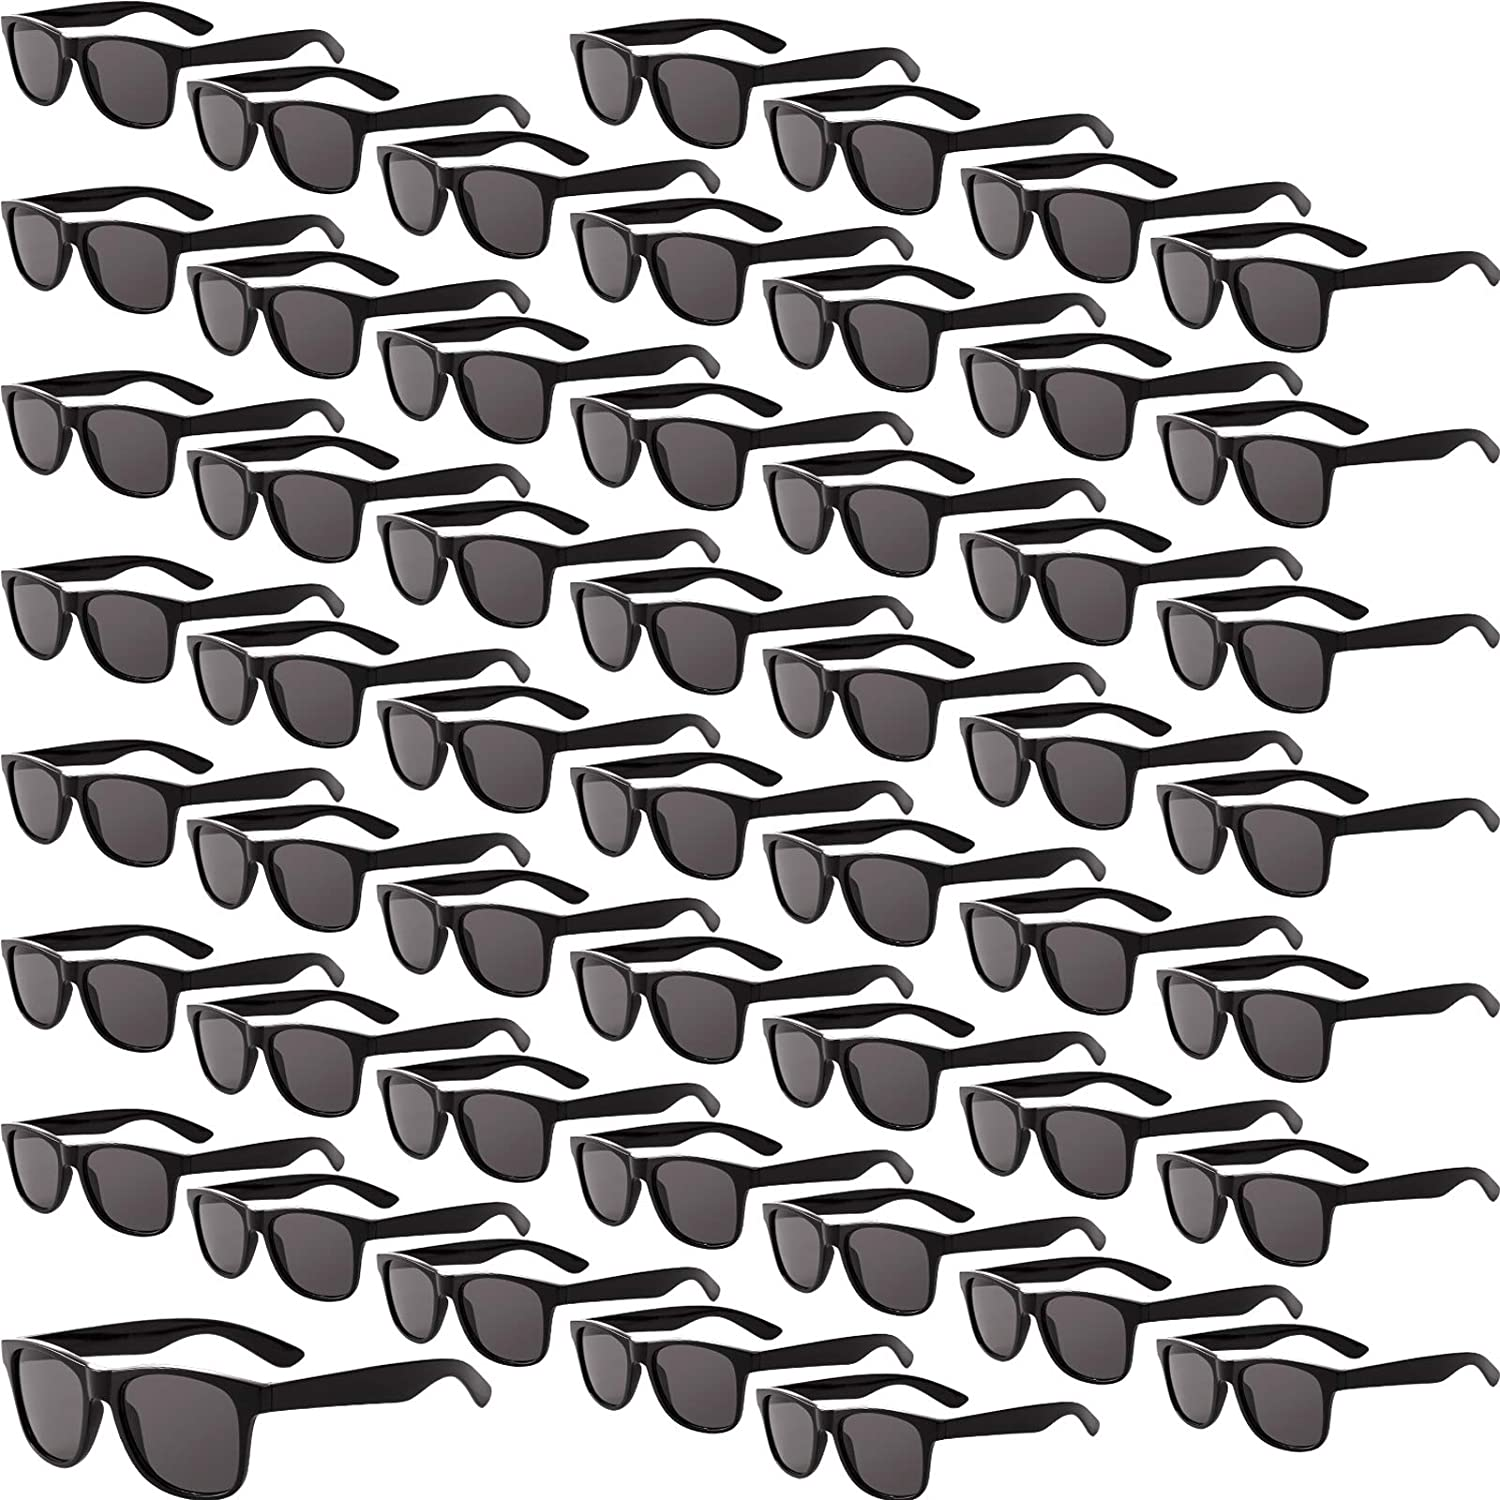 60 Pairs Vintage Sunglasses Black Classic Sunglasses Plastic Retro Style Eyewear for Party Accessories Women and Men Favors